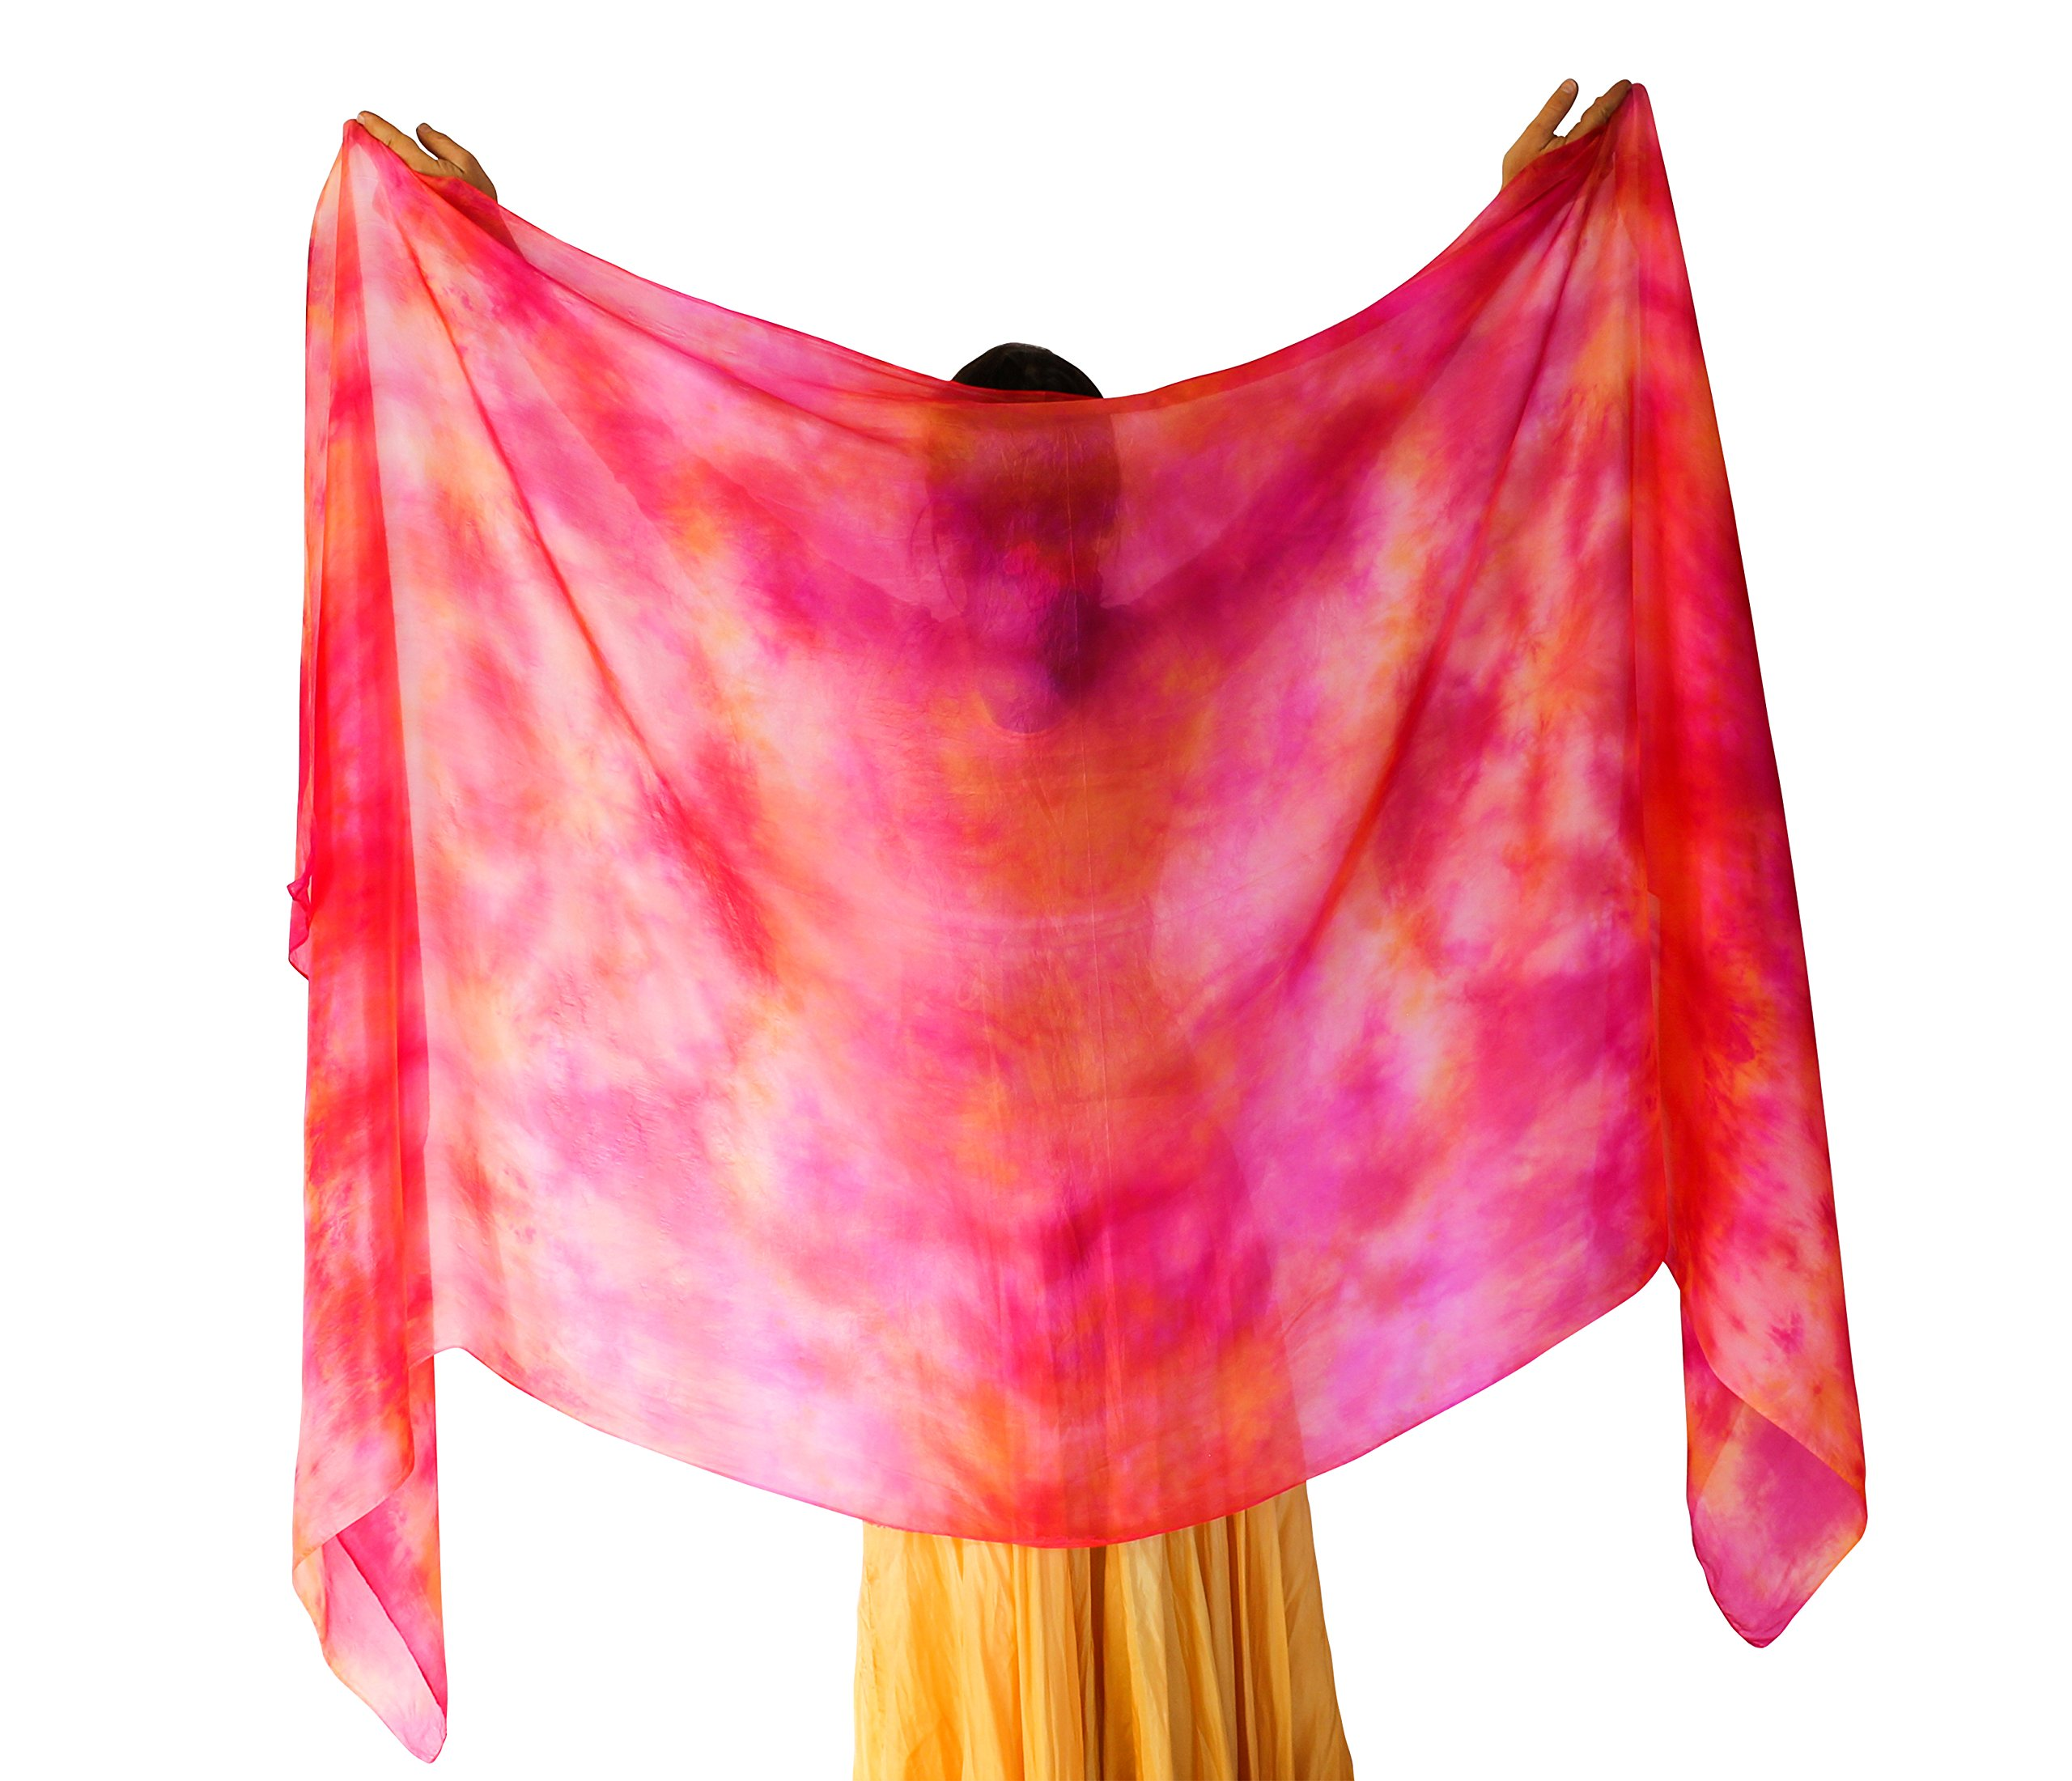 Nahari Silks Womens 100% Silk Dance Scarves Shawls Wraps Solid Colors Fire 108''